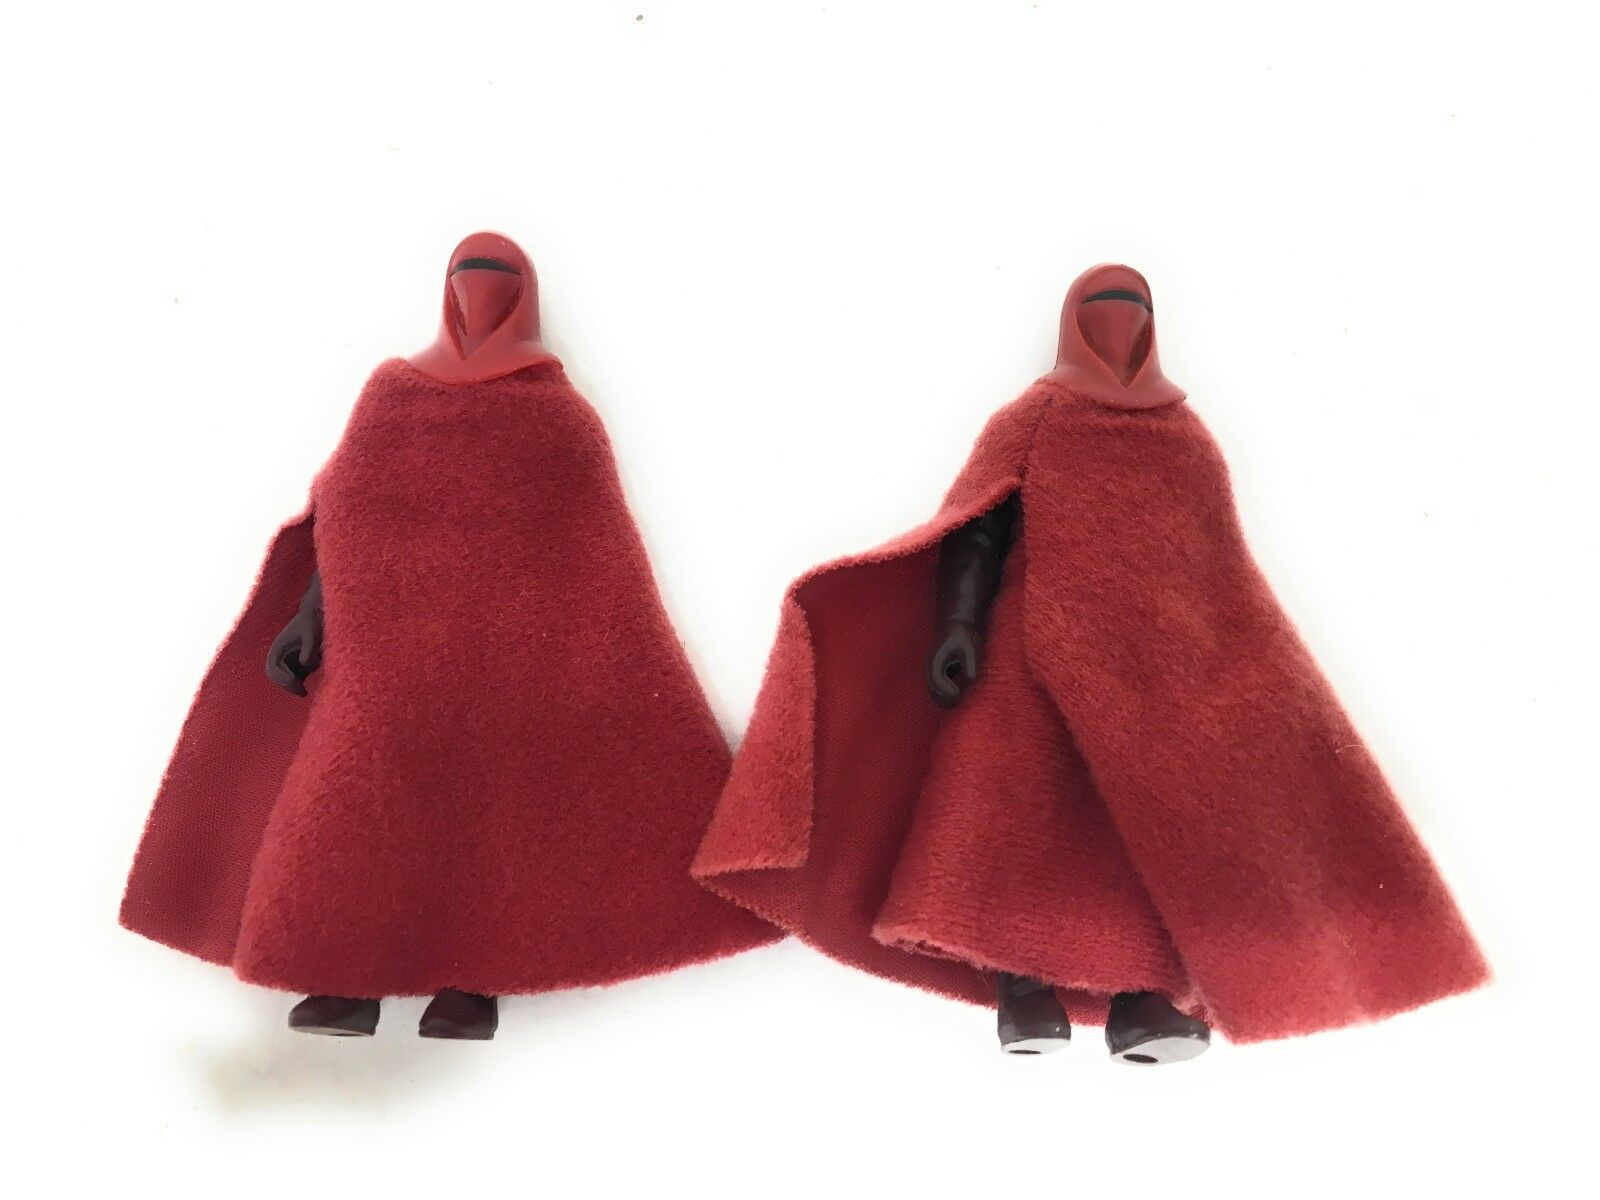 Vintage Star Wars EMPERORS ROYAL GUARD - All Original Lili Ledy Lot of 2 Figures